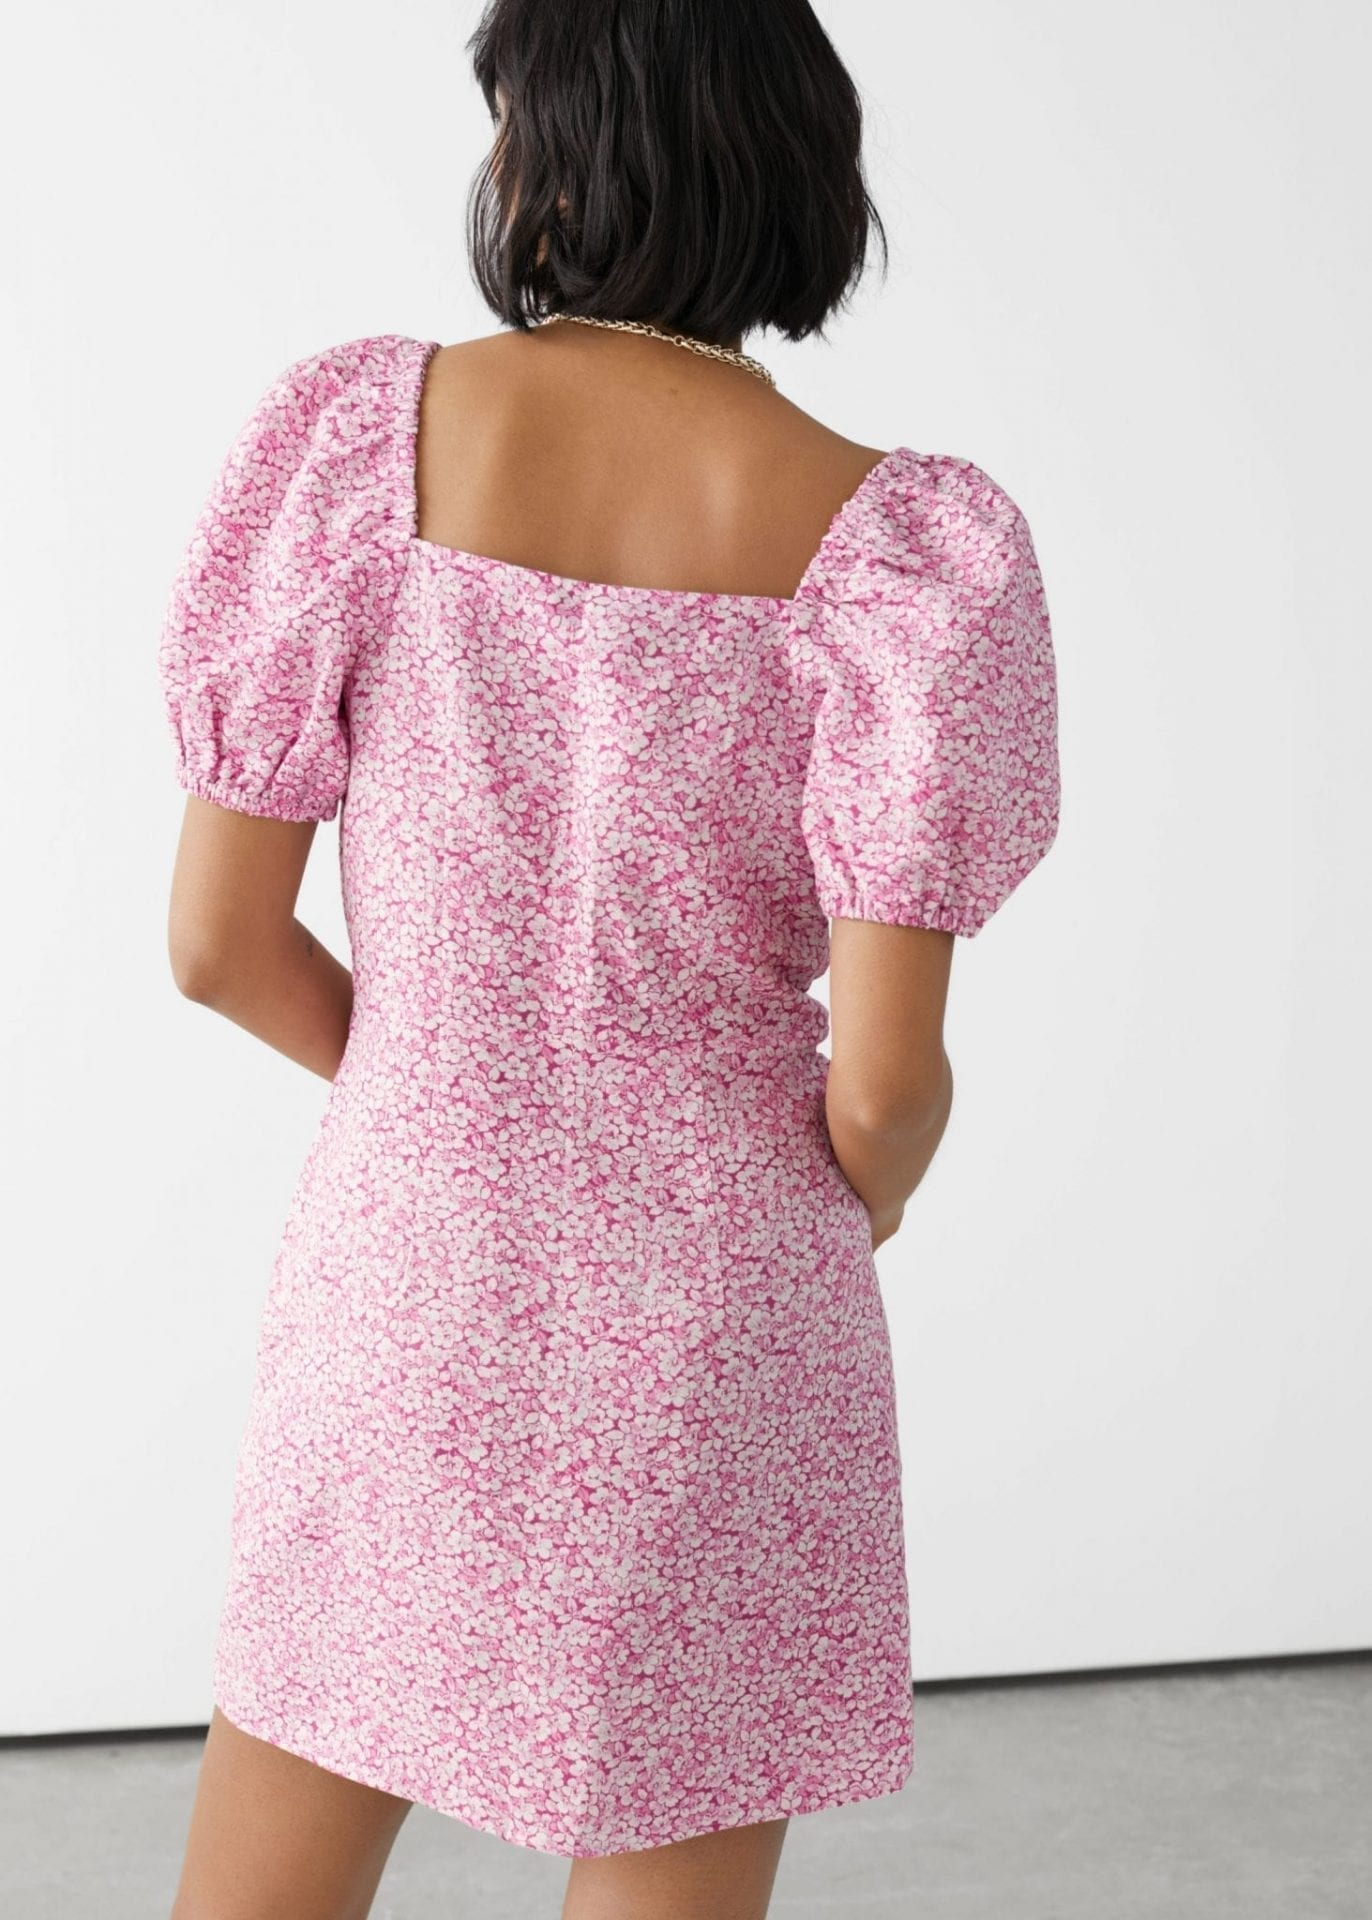 OTHER STORIES Fitted Puff Sleeve Mini Dress